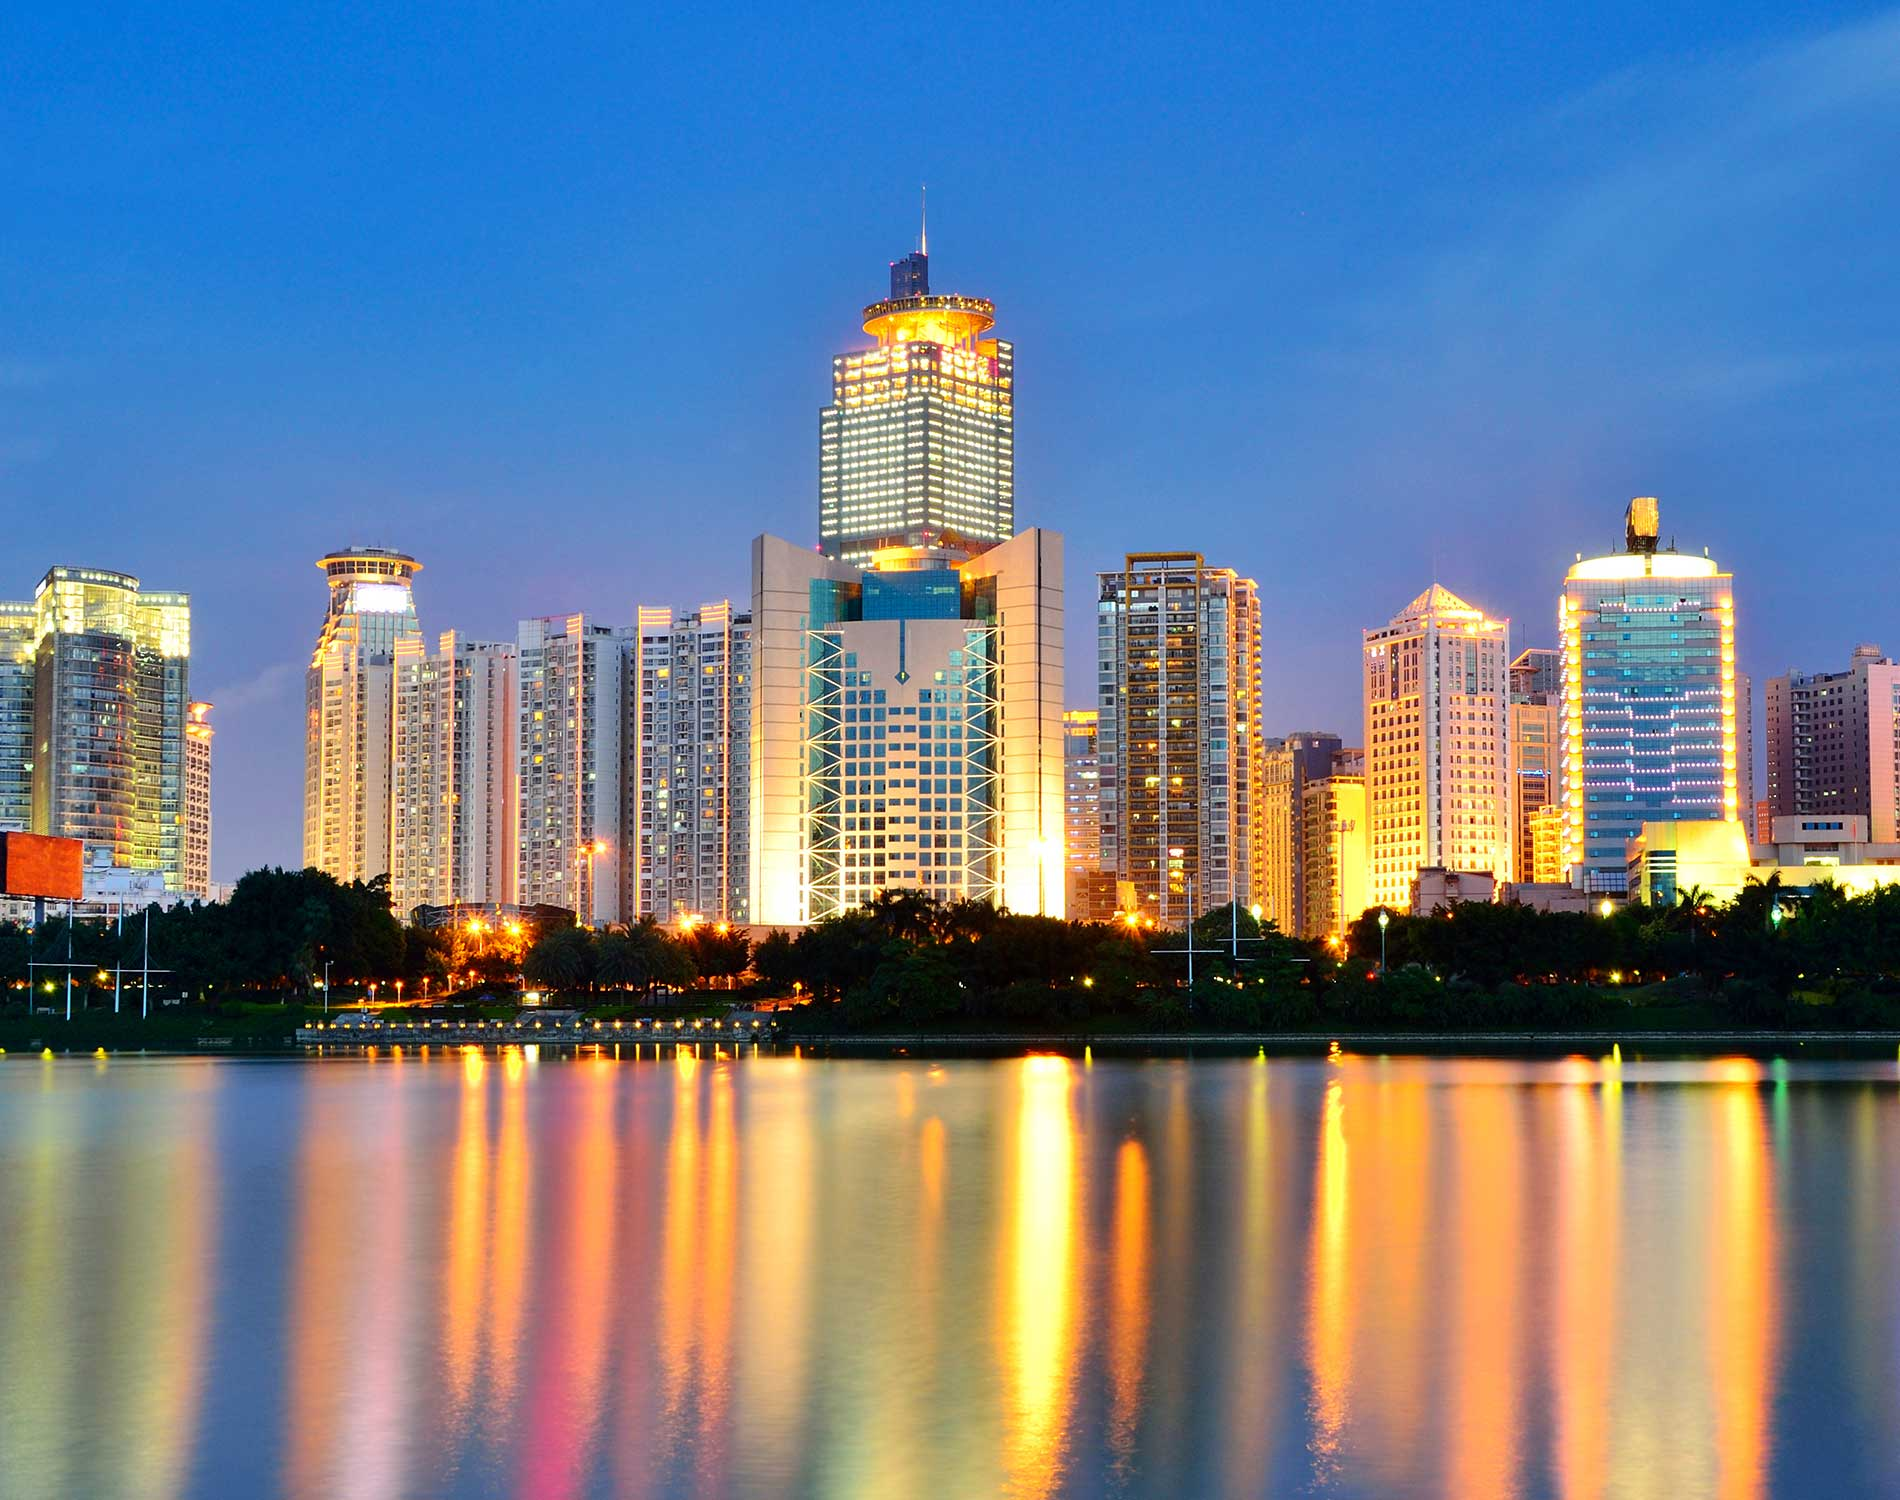 /~/media/Images/Website/Background%20Images/Offices/Nanning/Nanning_City_1900x1500px.ashx